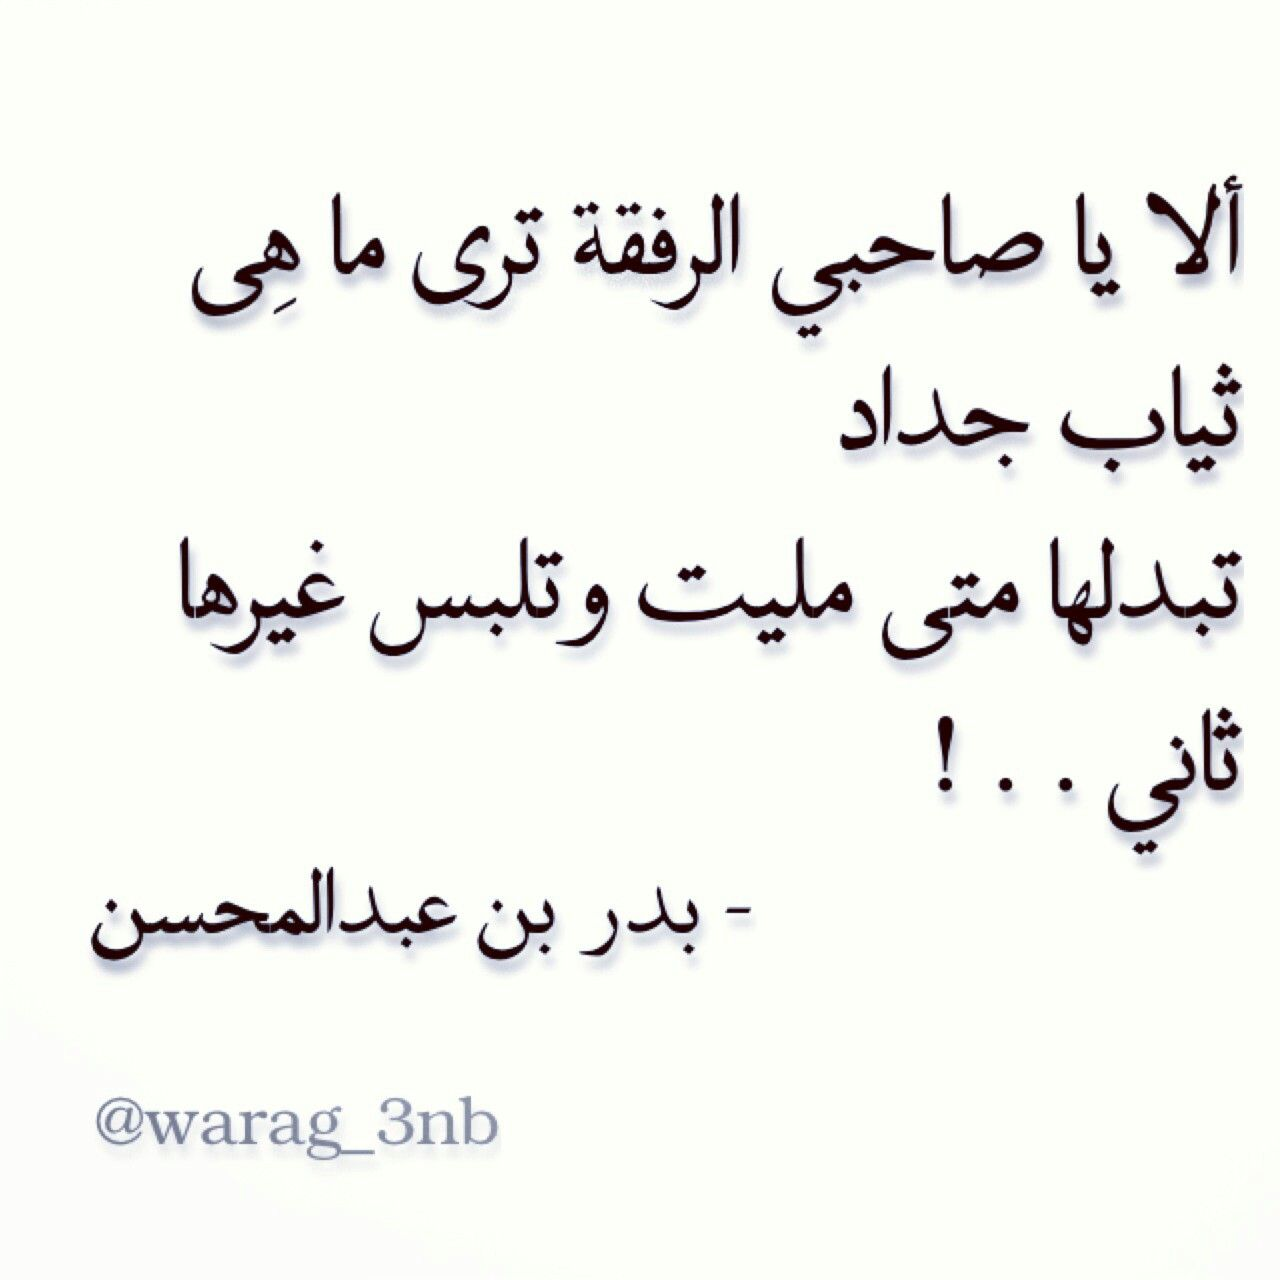 Pin by نونة نونة on أشعار | Arabic quotes, Friend friendship